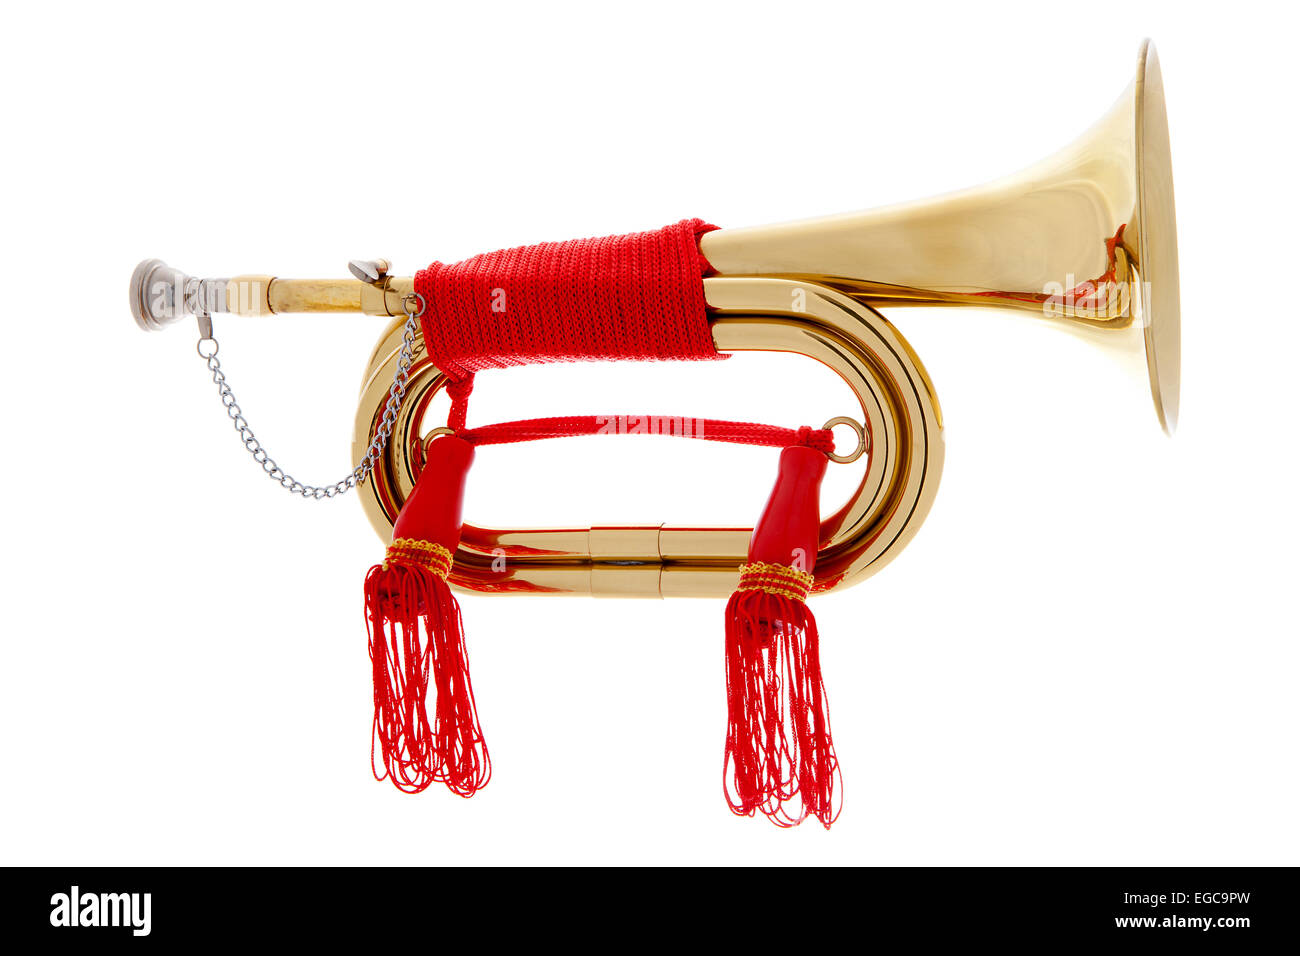 Golden horn with red rope over white background - Stock Image